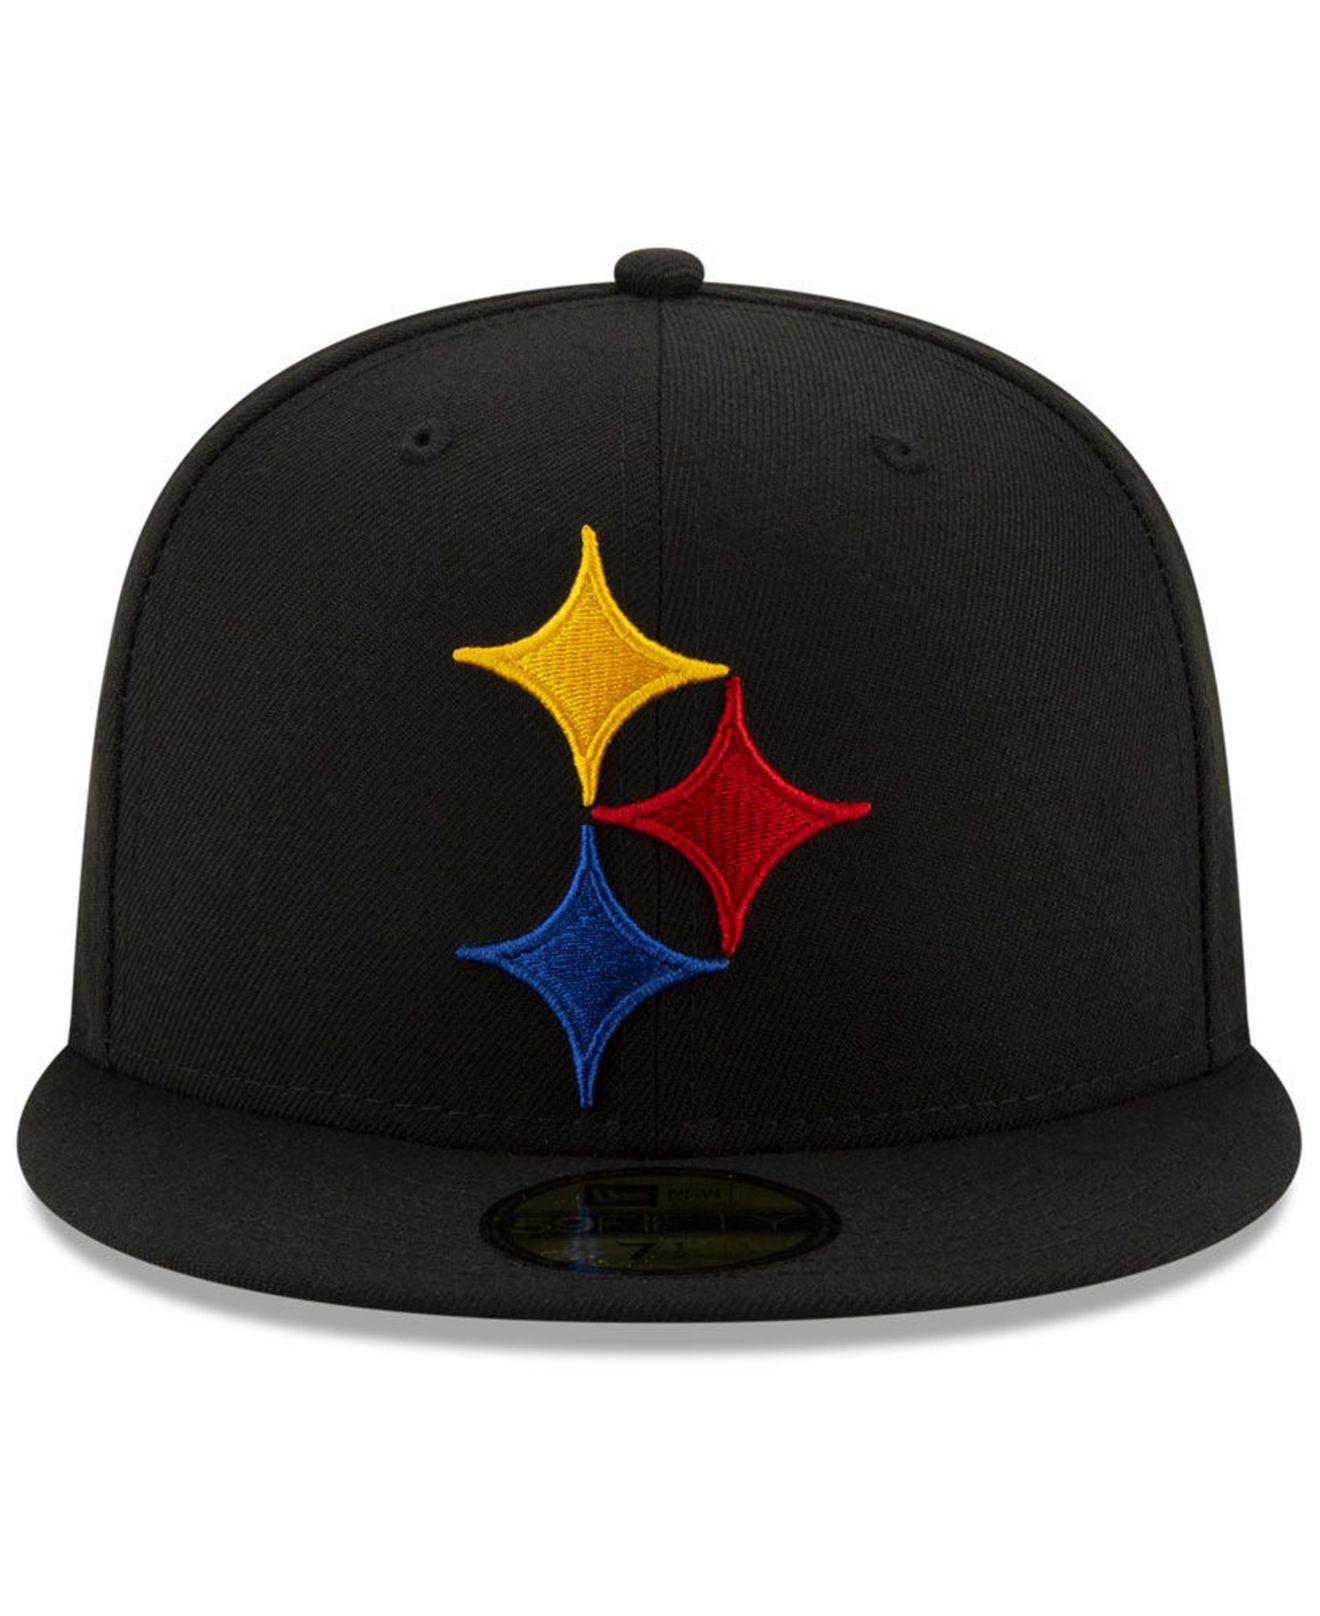 Lyst - KTZ Pittsburgh Steelers Logo Elements Collection 59fifty Fitted Cap  in Black 10b0046f45d